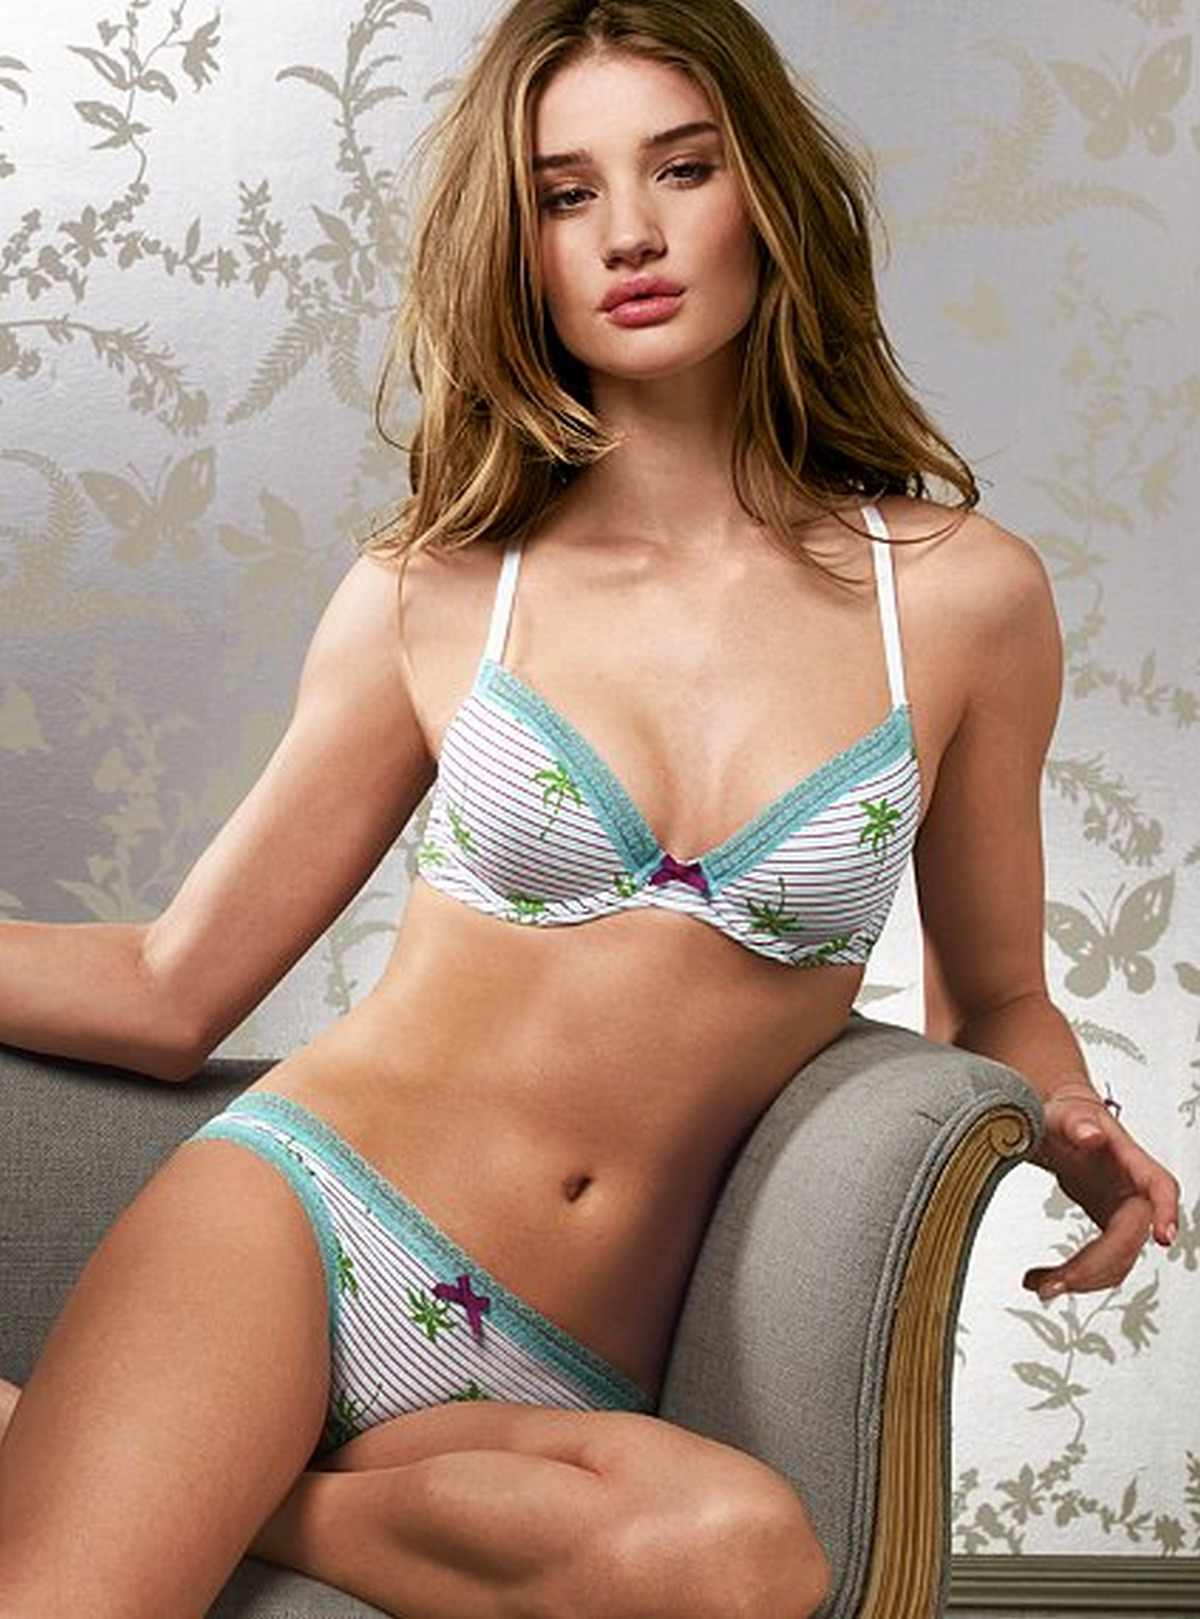 Rosie - Victoria's Secret Angels Photo (26824629) - Fanpop fanclubs